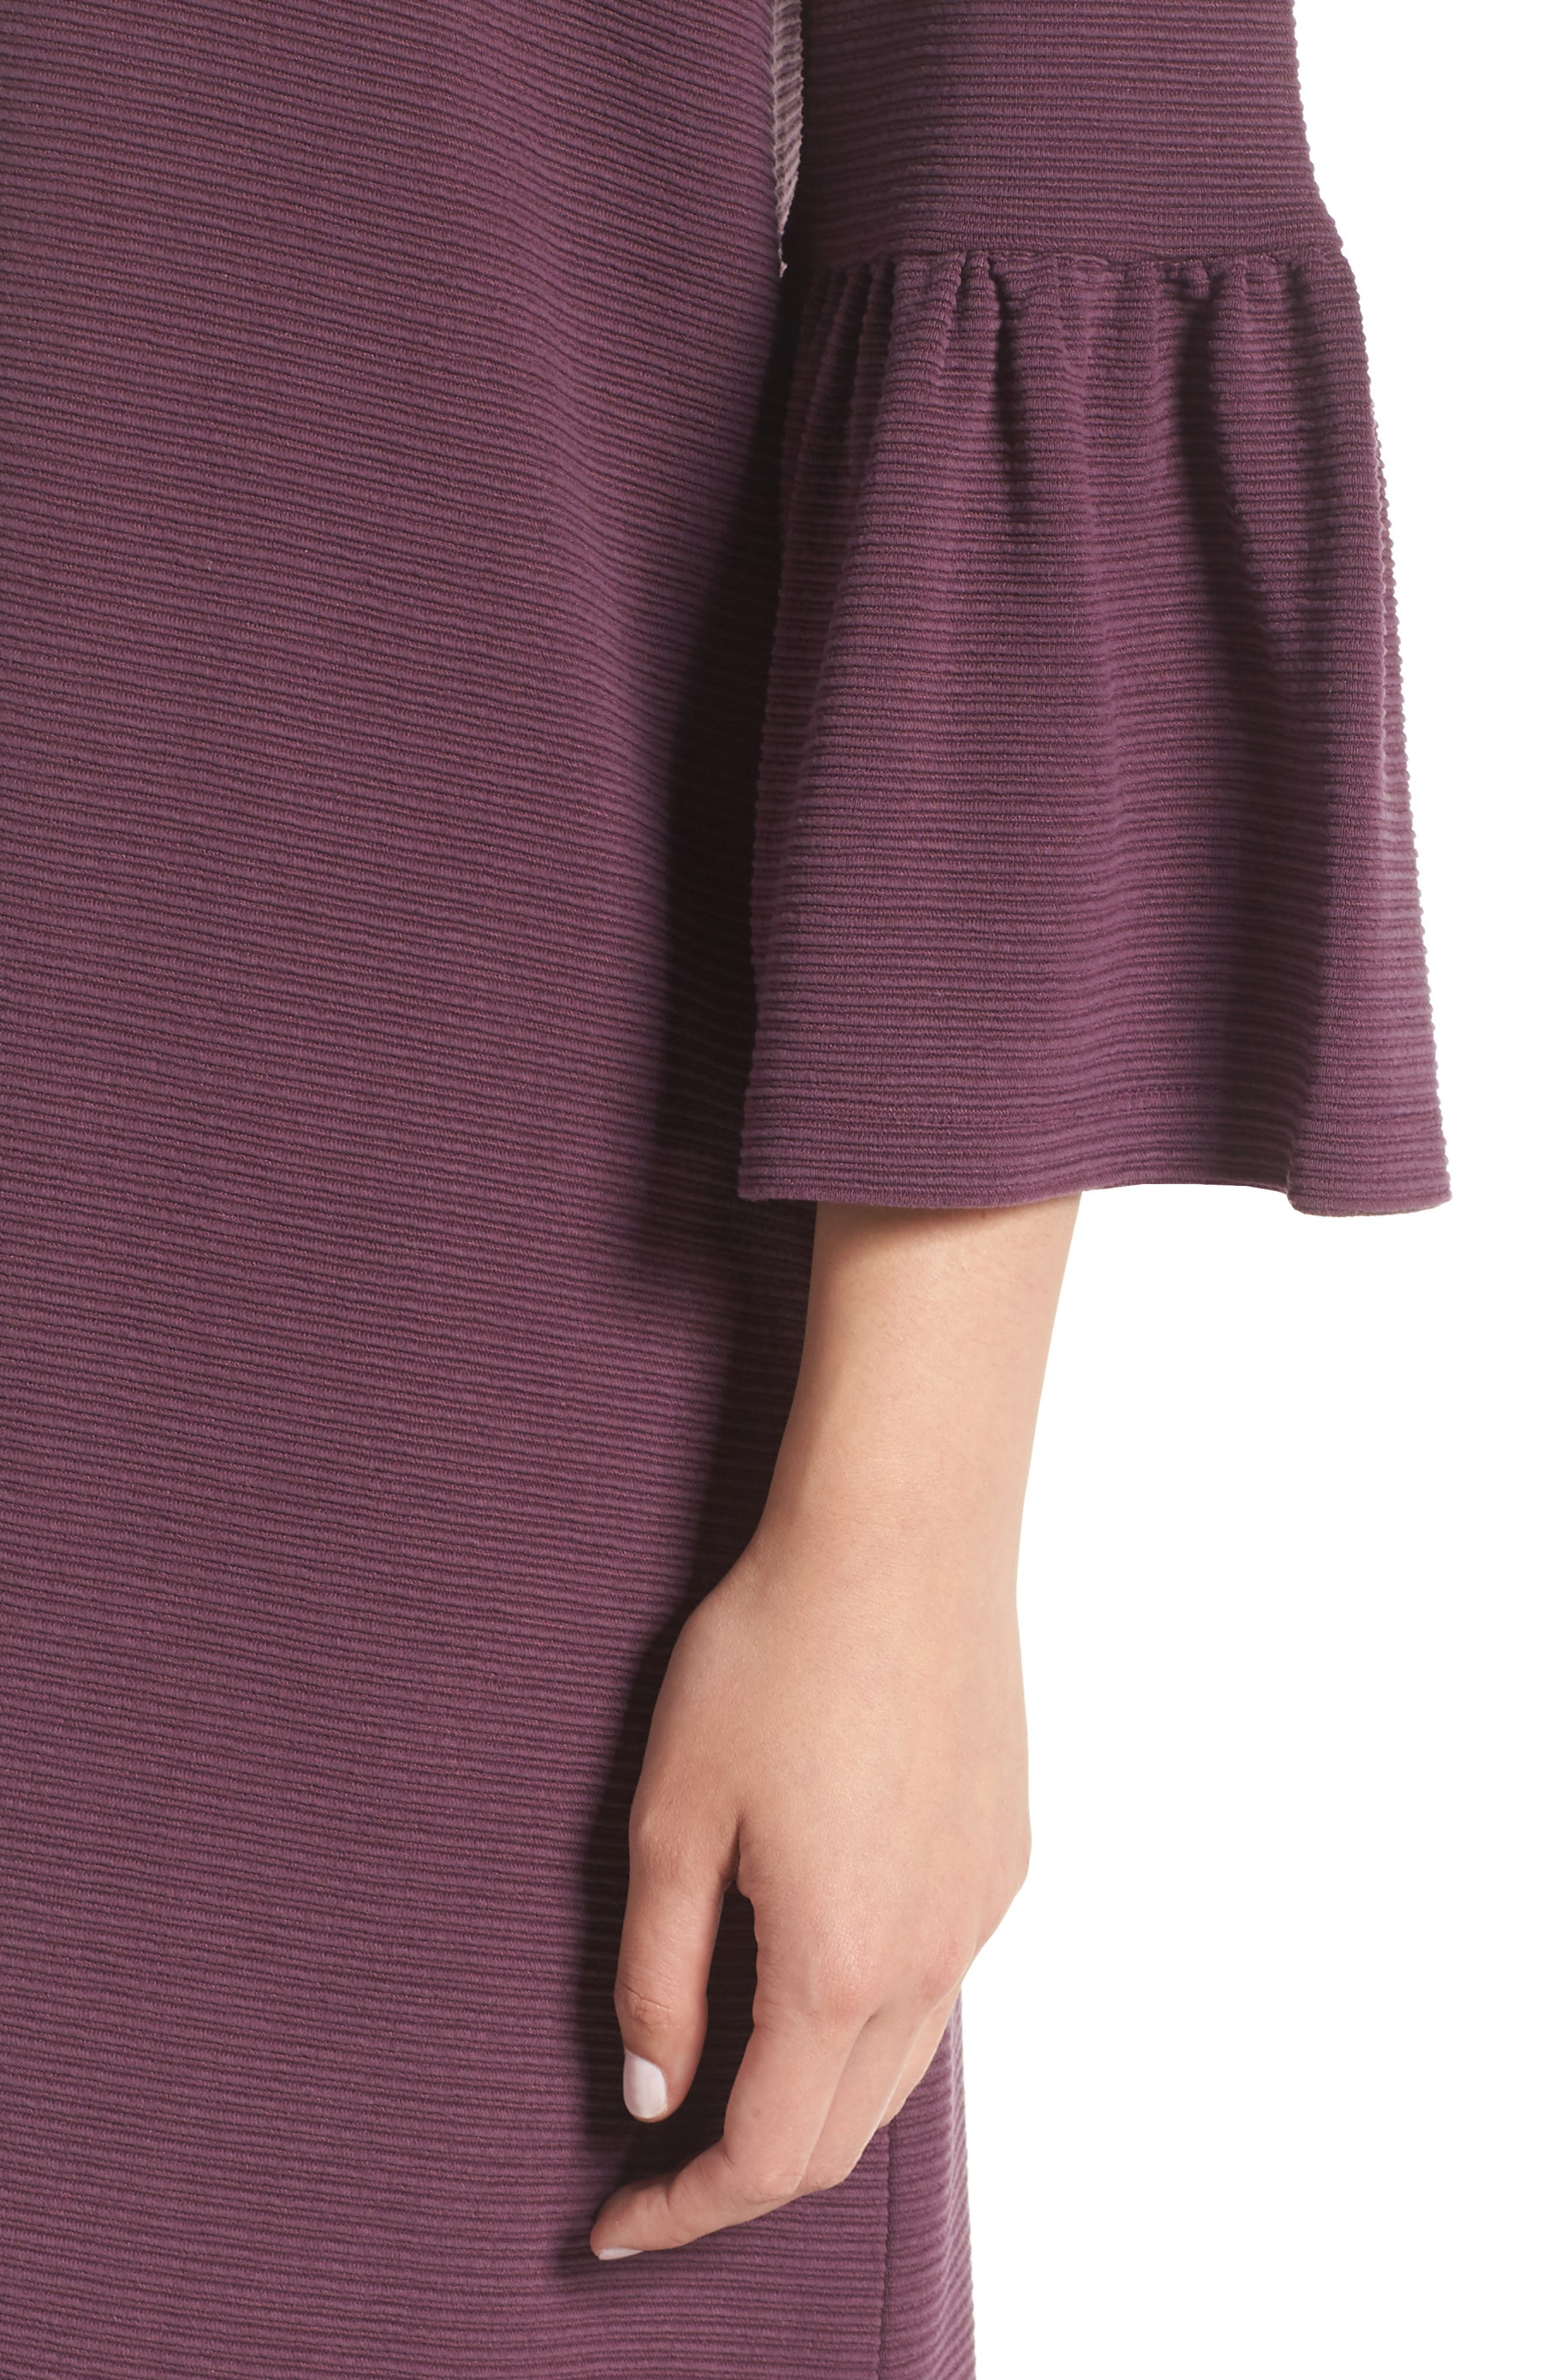 Paros Sudan Bell Sleeve Shift Dress,                             Alternate thumbnail 4, color,                             Plum Noir